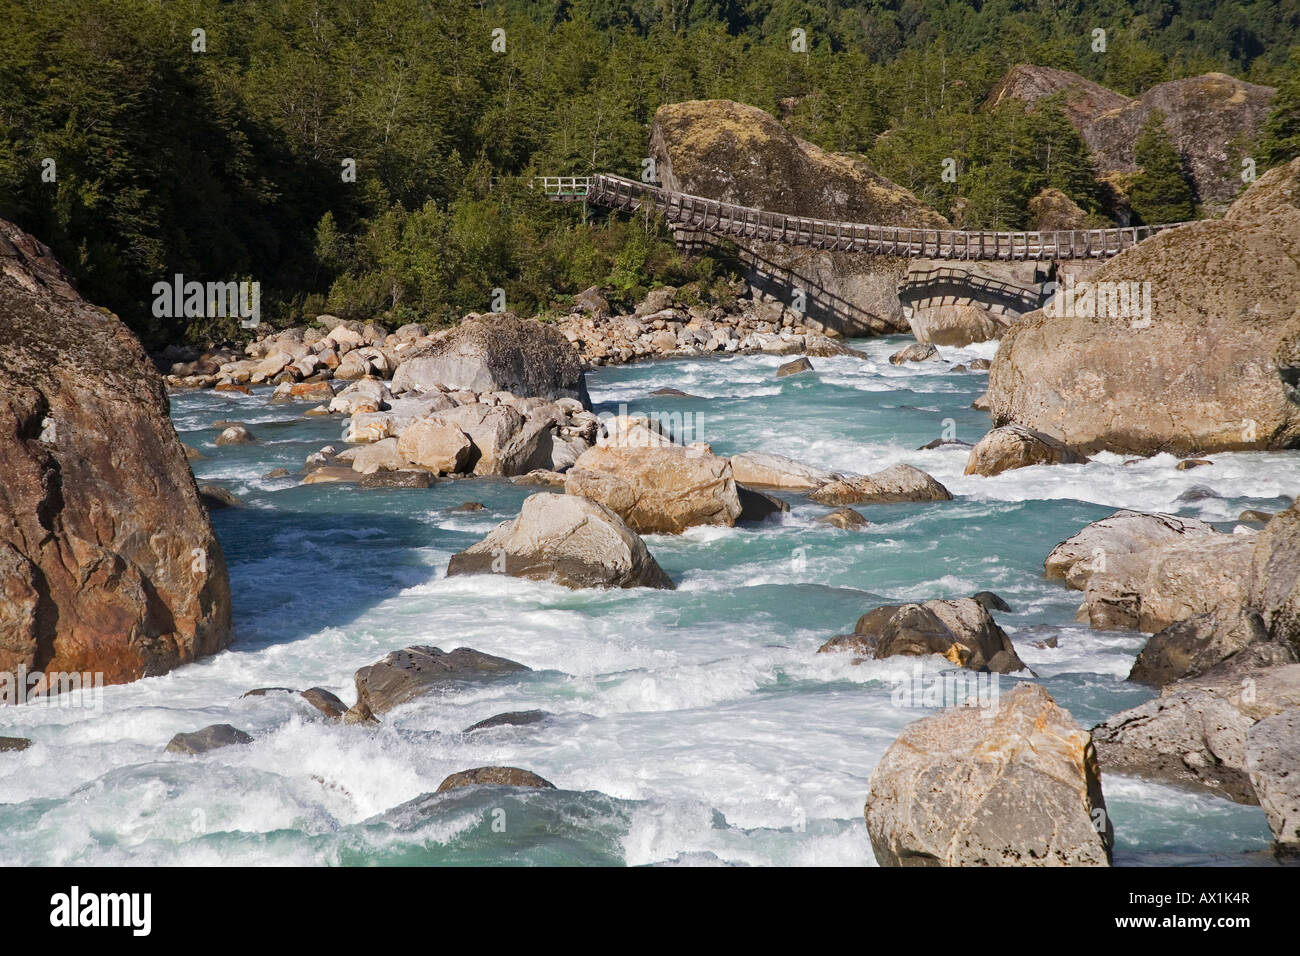 Plank bridge, Park Queulat, Carretera Austral, Patagonia, Chile, South America - Stock Image